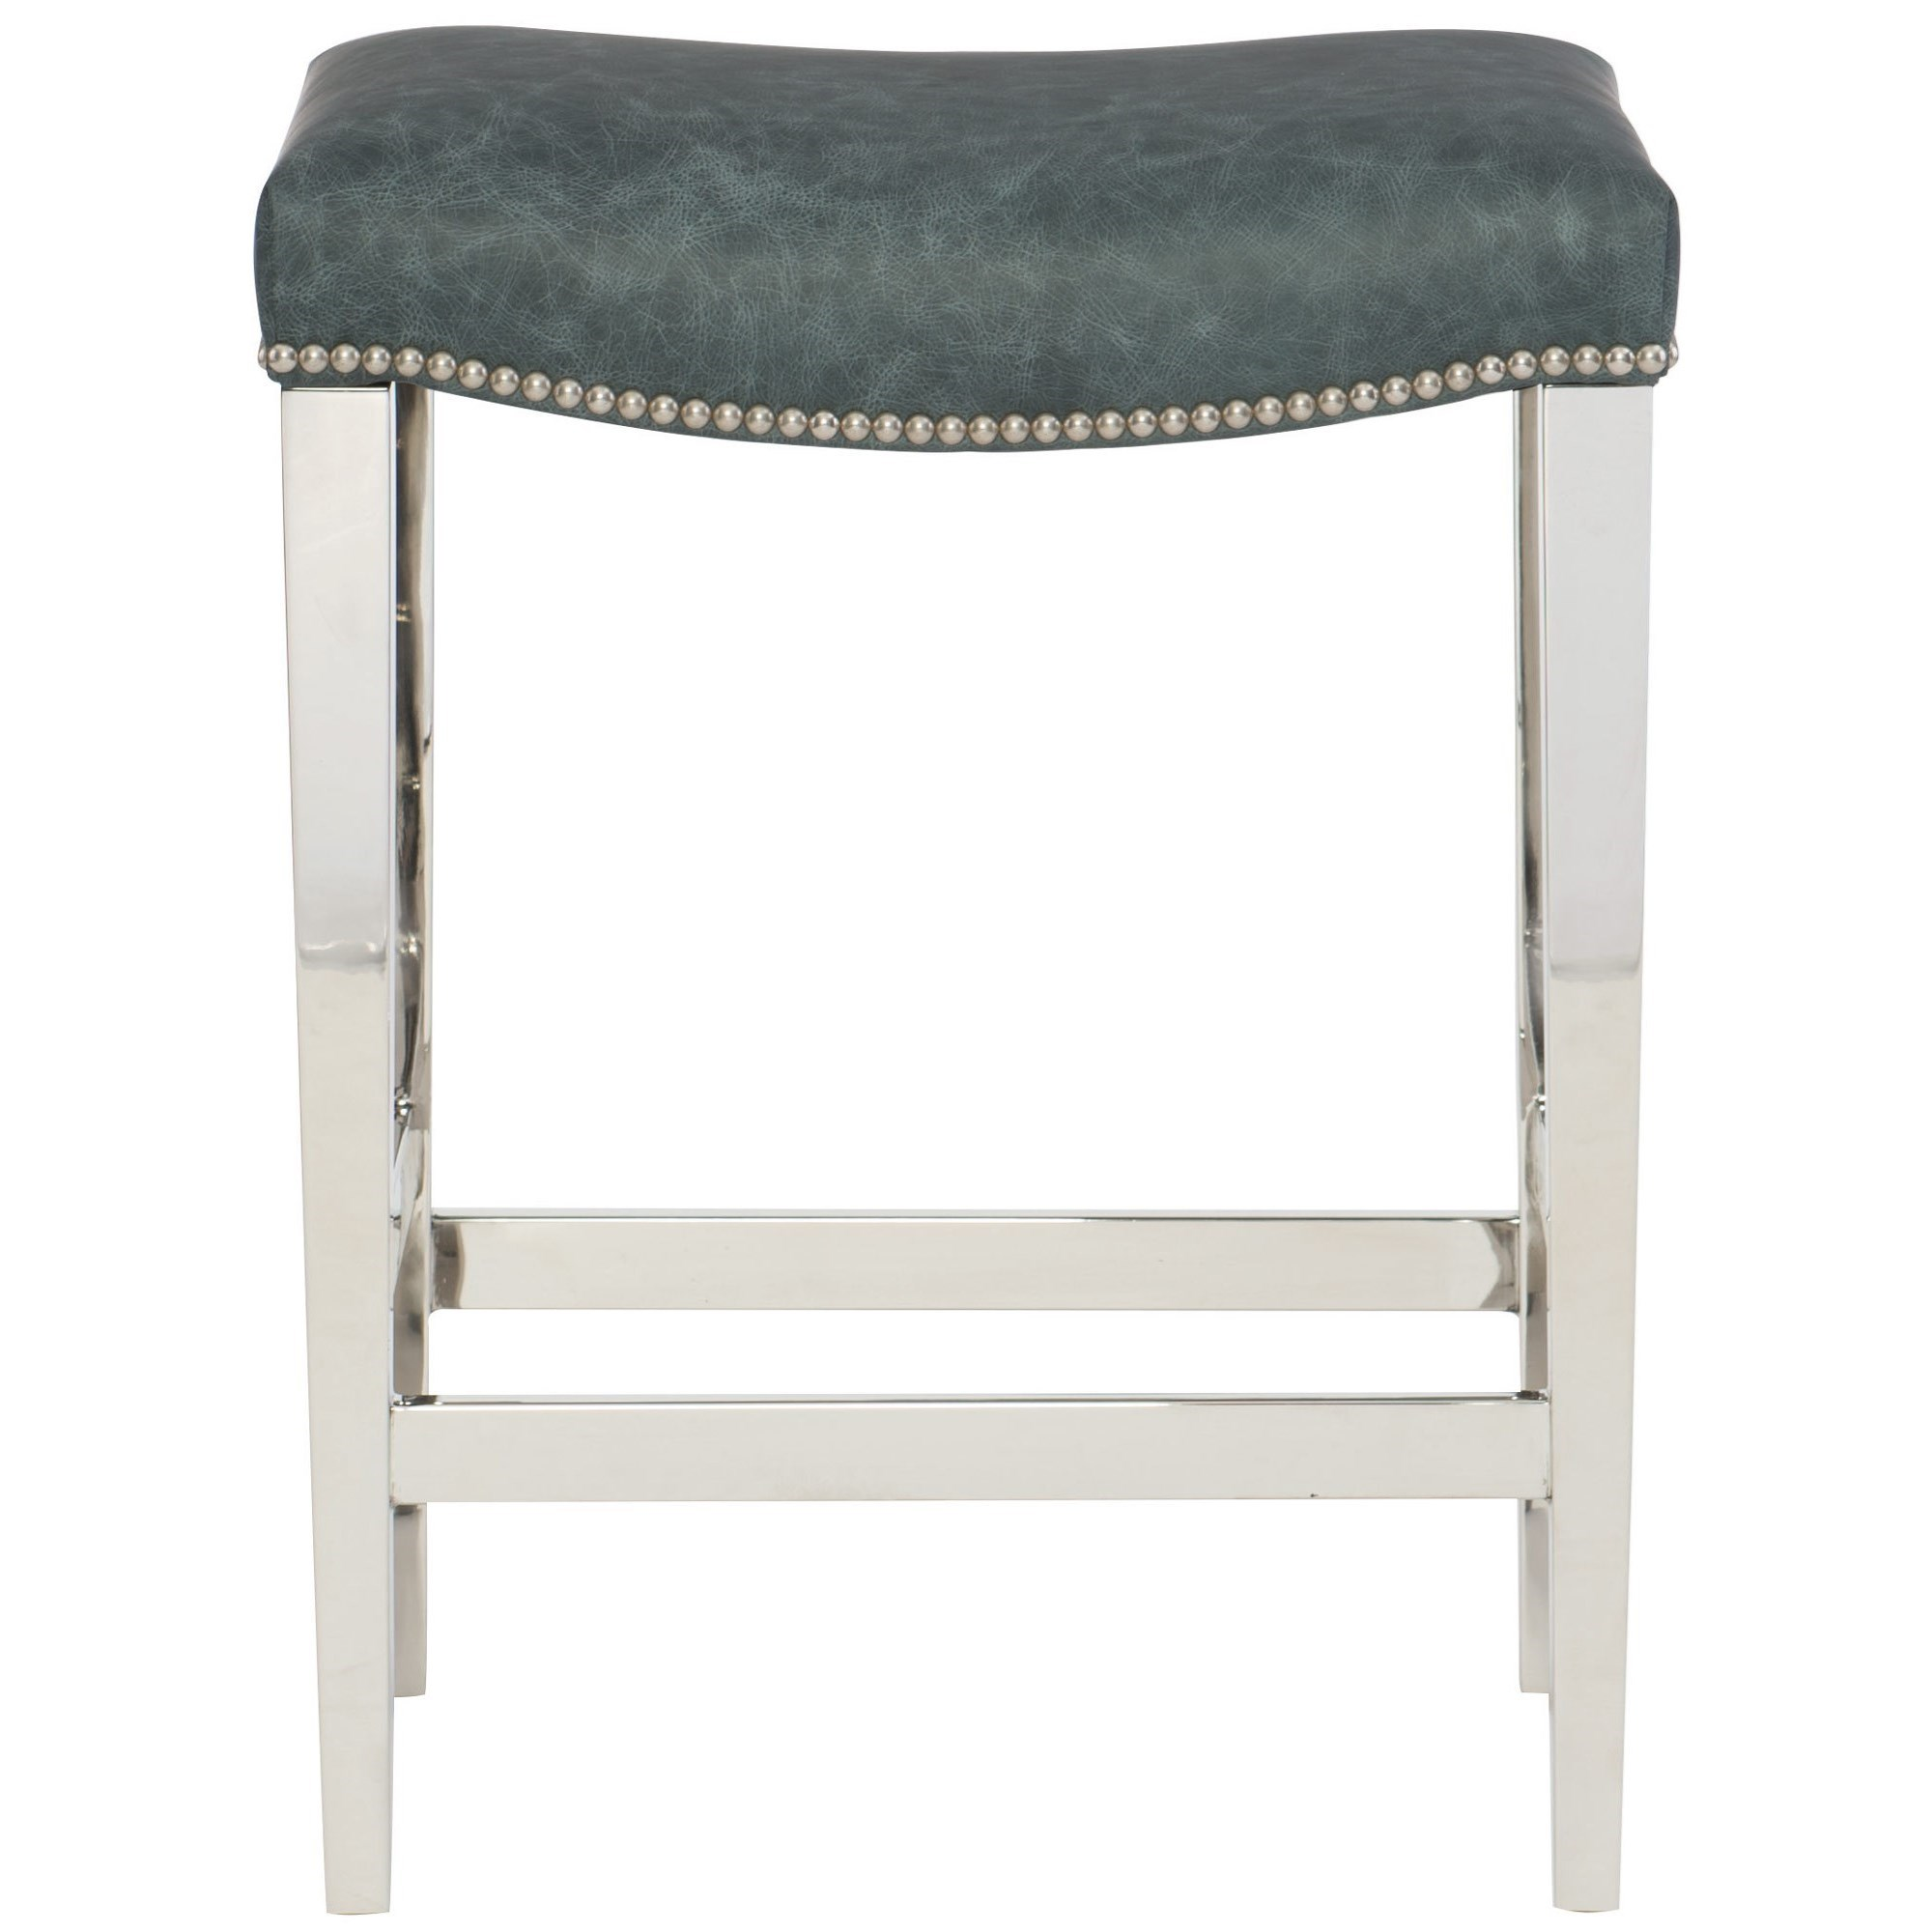 Interiors - Thorpe Leather Counter Height Stool by Bernhardt at Nassau Furniture and Mattress